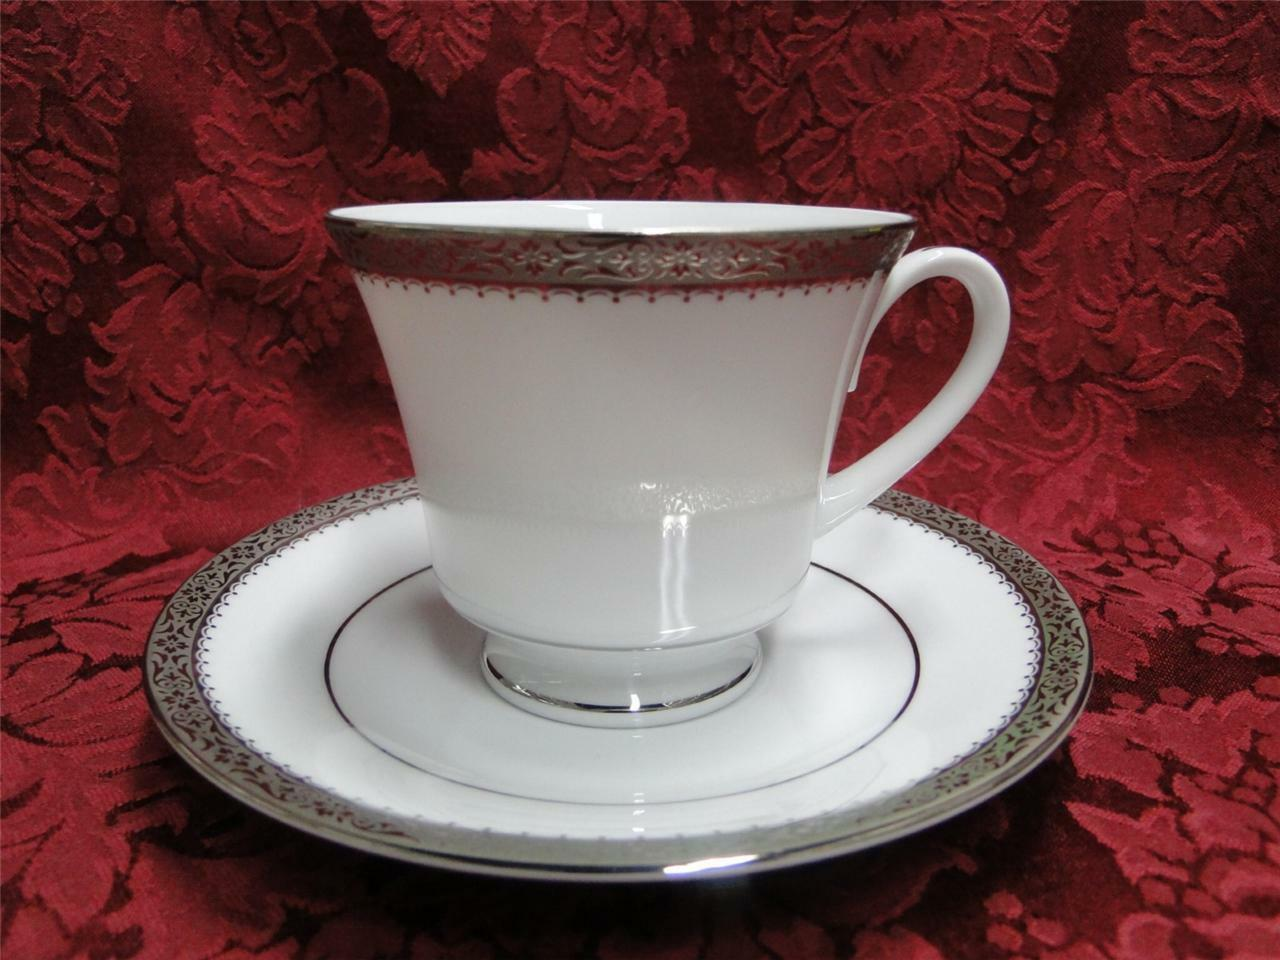 Noritake Essex Platinum, Encrusted Floral Band: UNUSED Cup & Saucer Set (s)